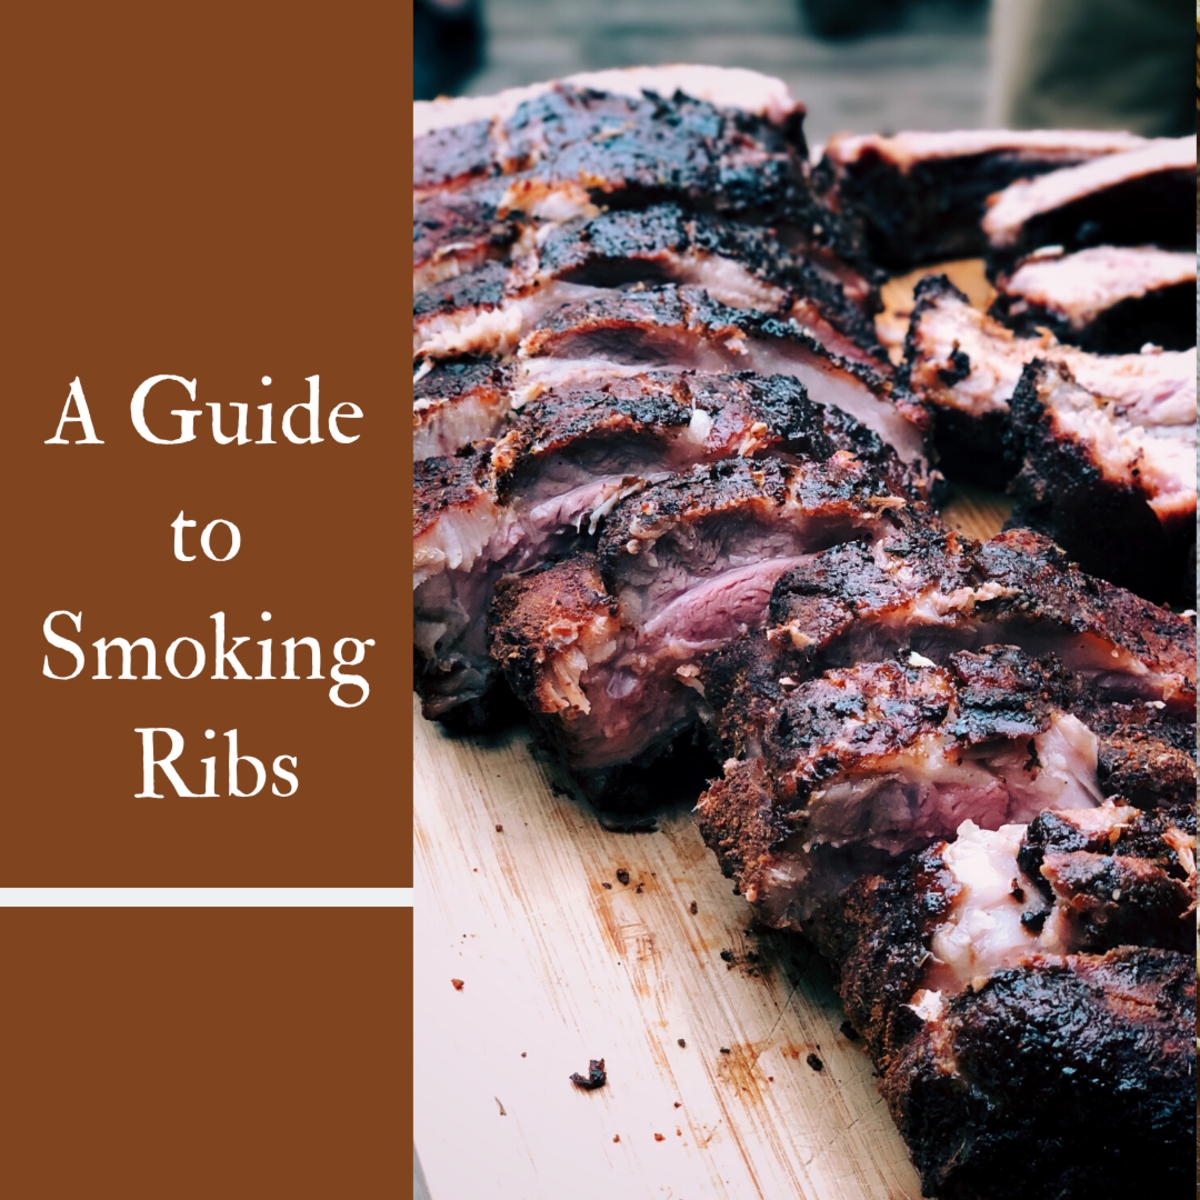 A Step-by-Step Guide to Smoking Ribs